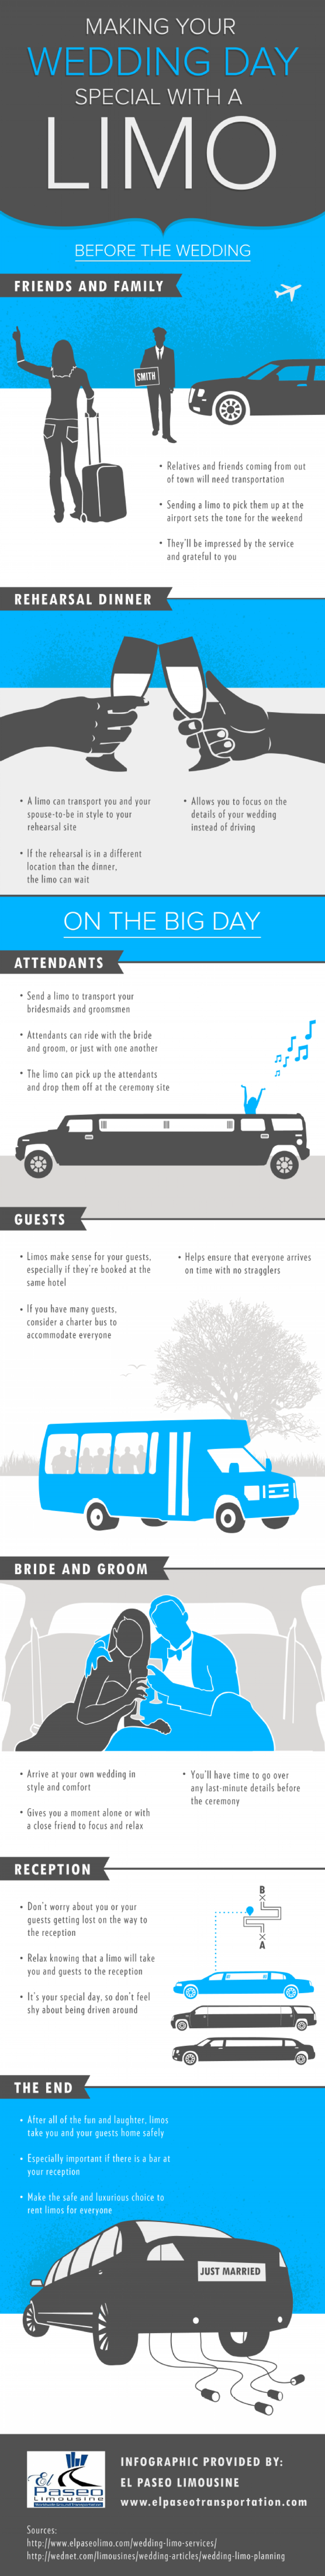 Making Your Wedding Day Special With a Limo Infographic